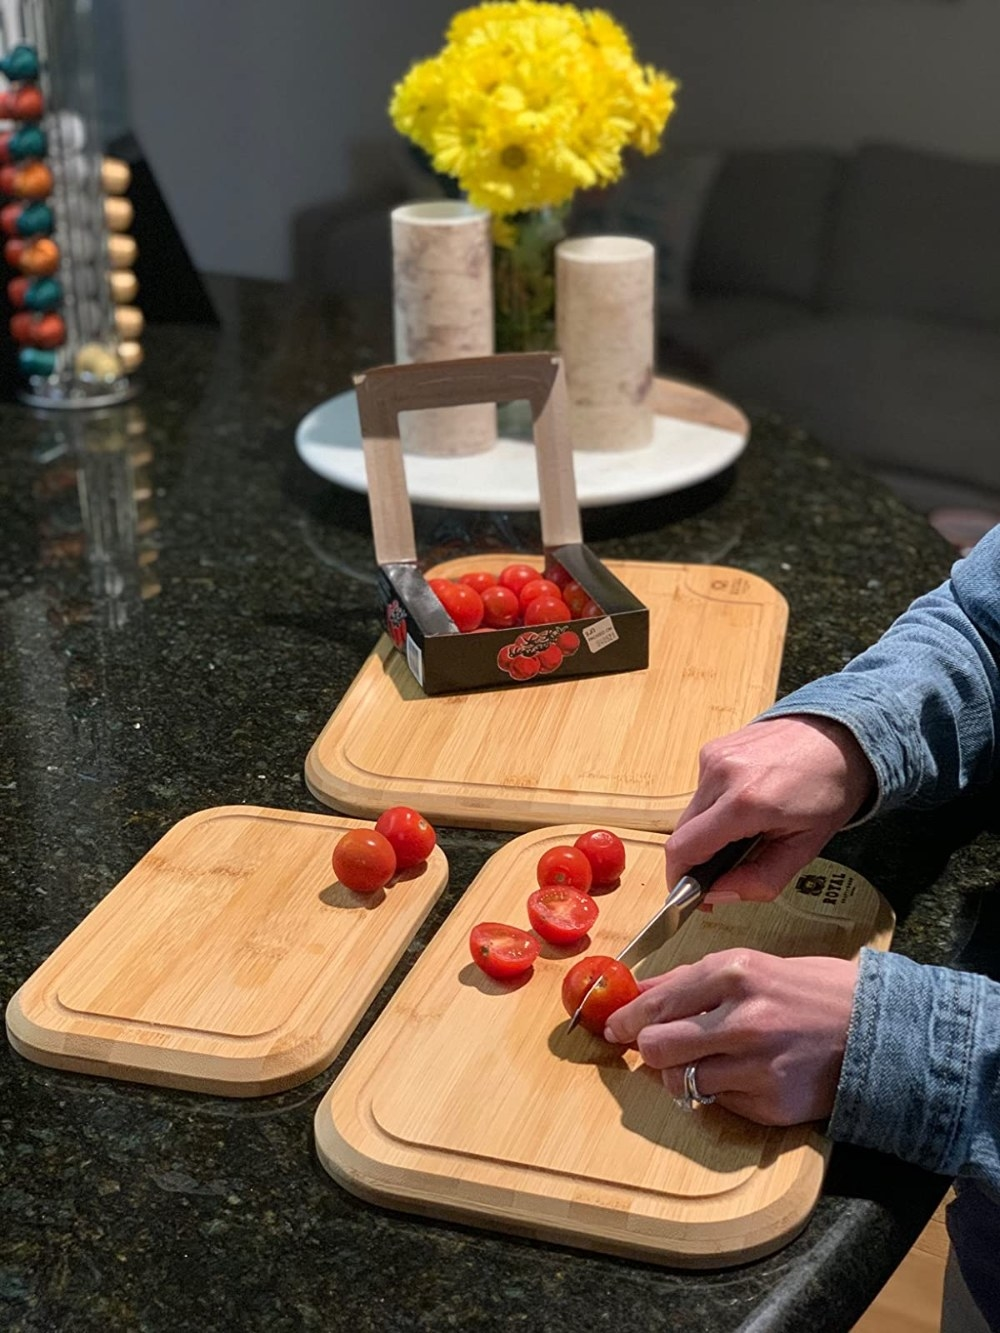 Reviewer's photo of the cutting boards